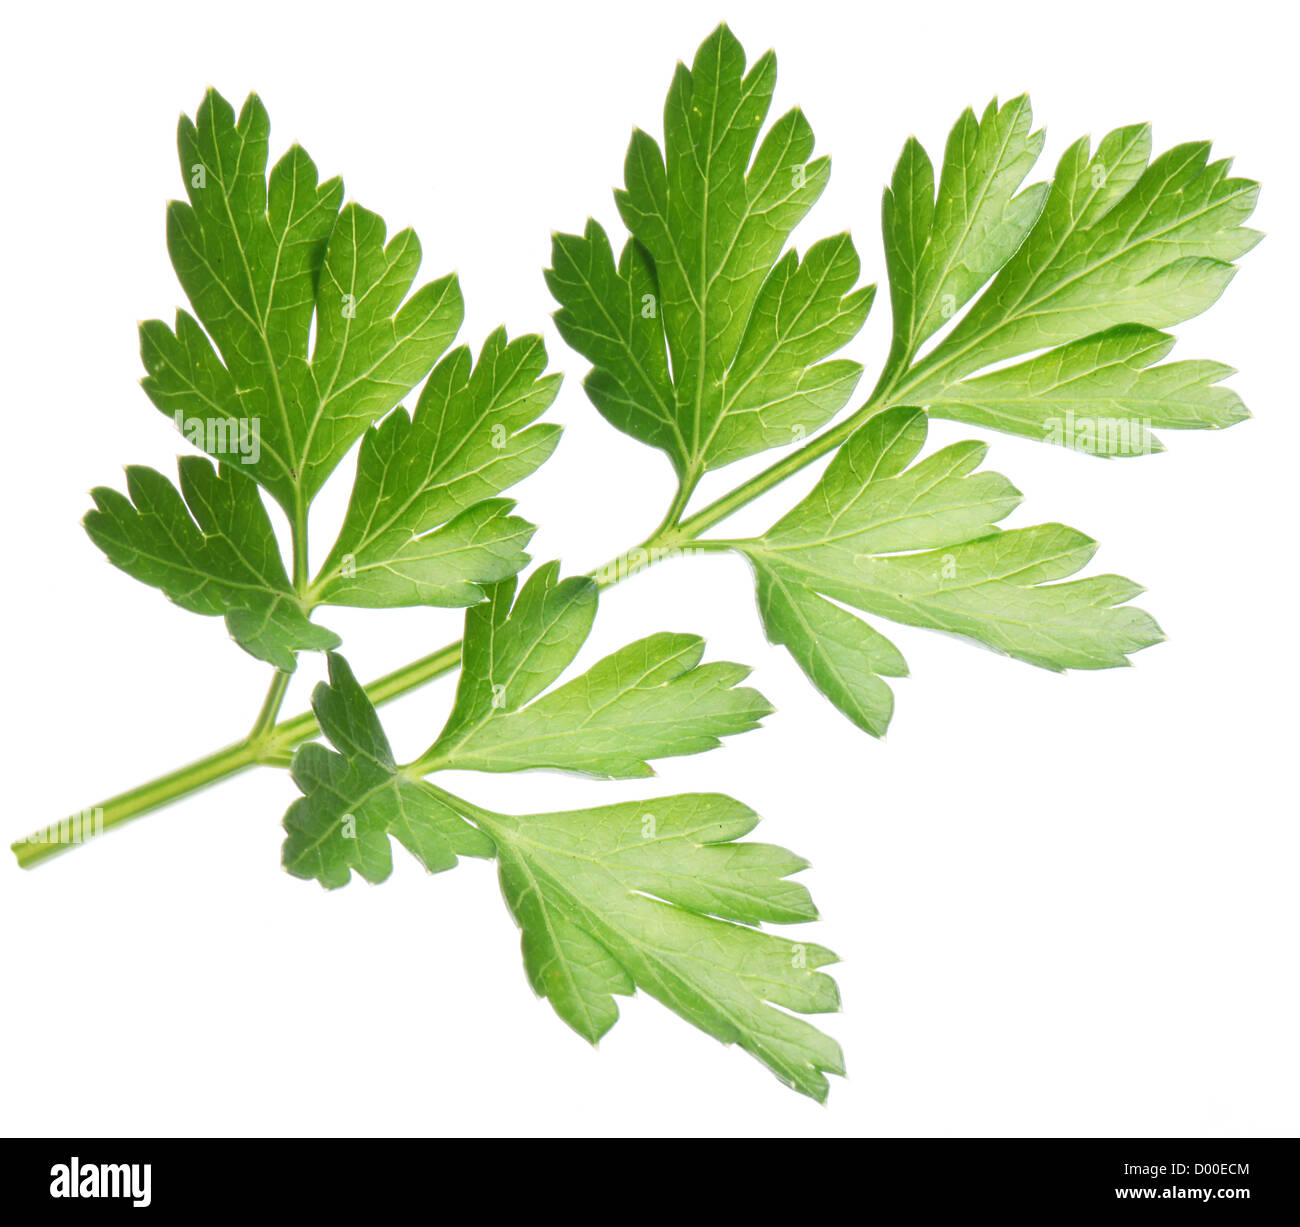 Parsley on a white background. - Stock Image